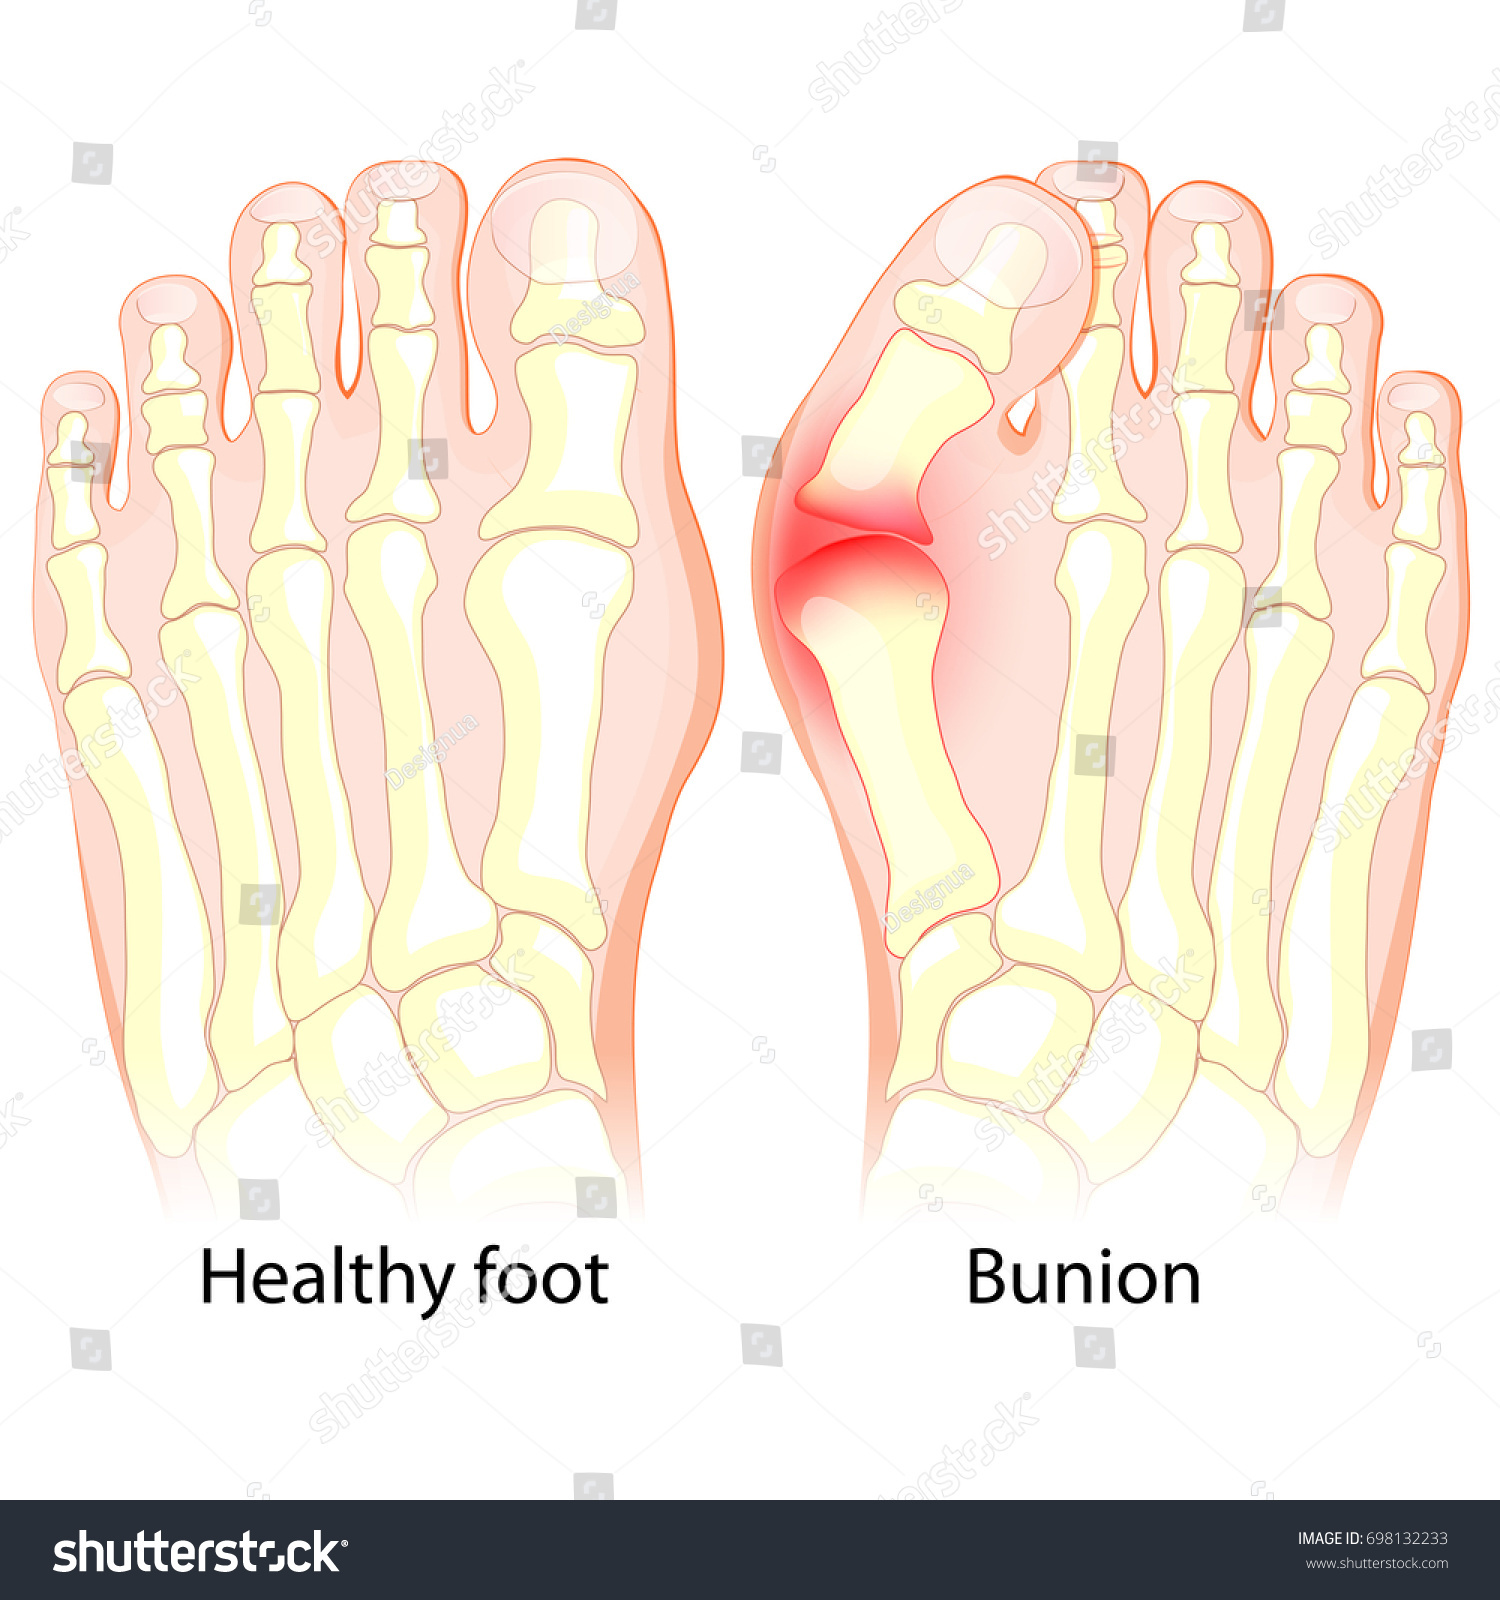 Healthy Foot Foot Bunion Human Anatomy Stock Vector 698132233 ...